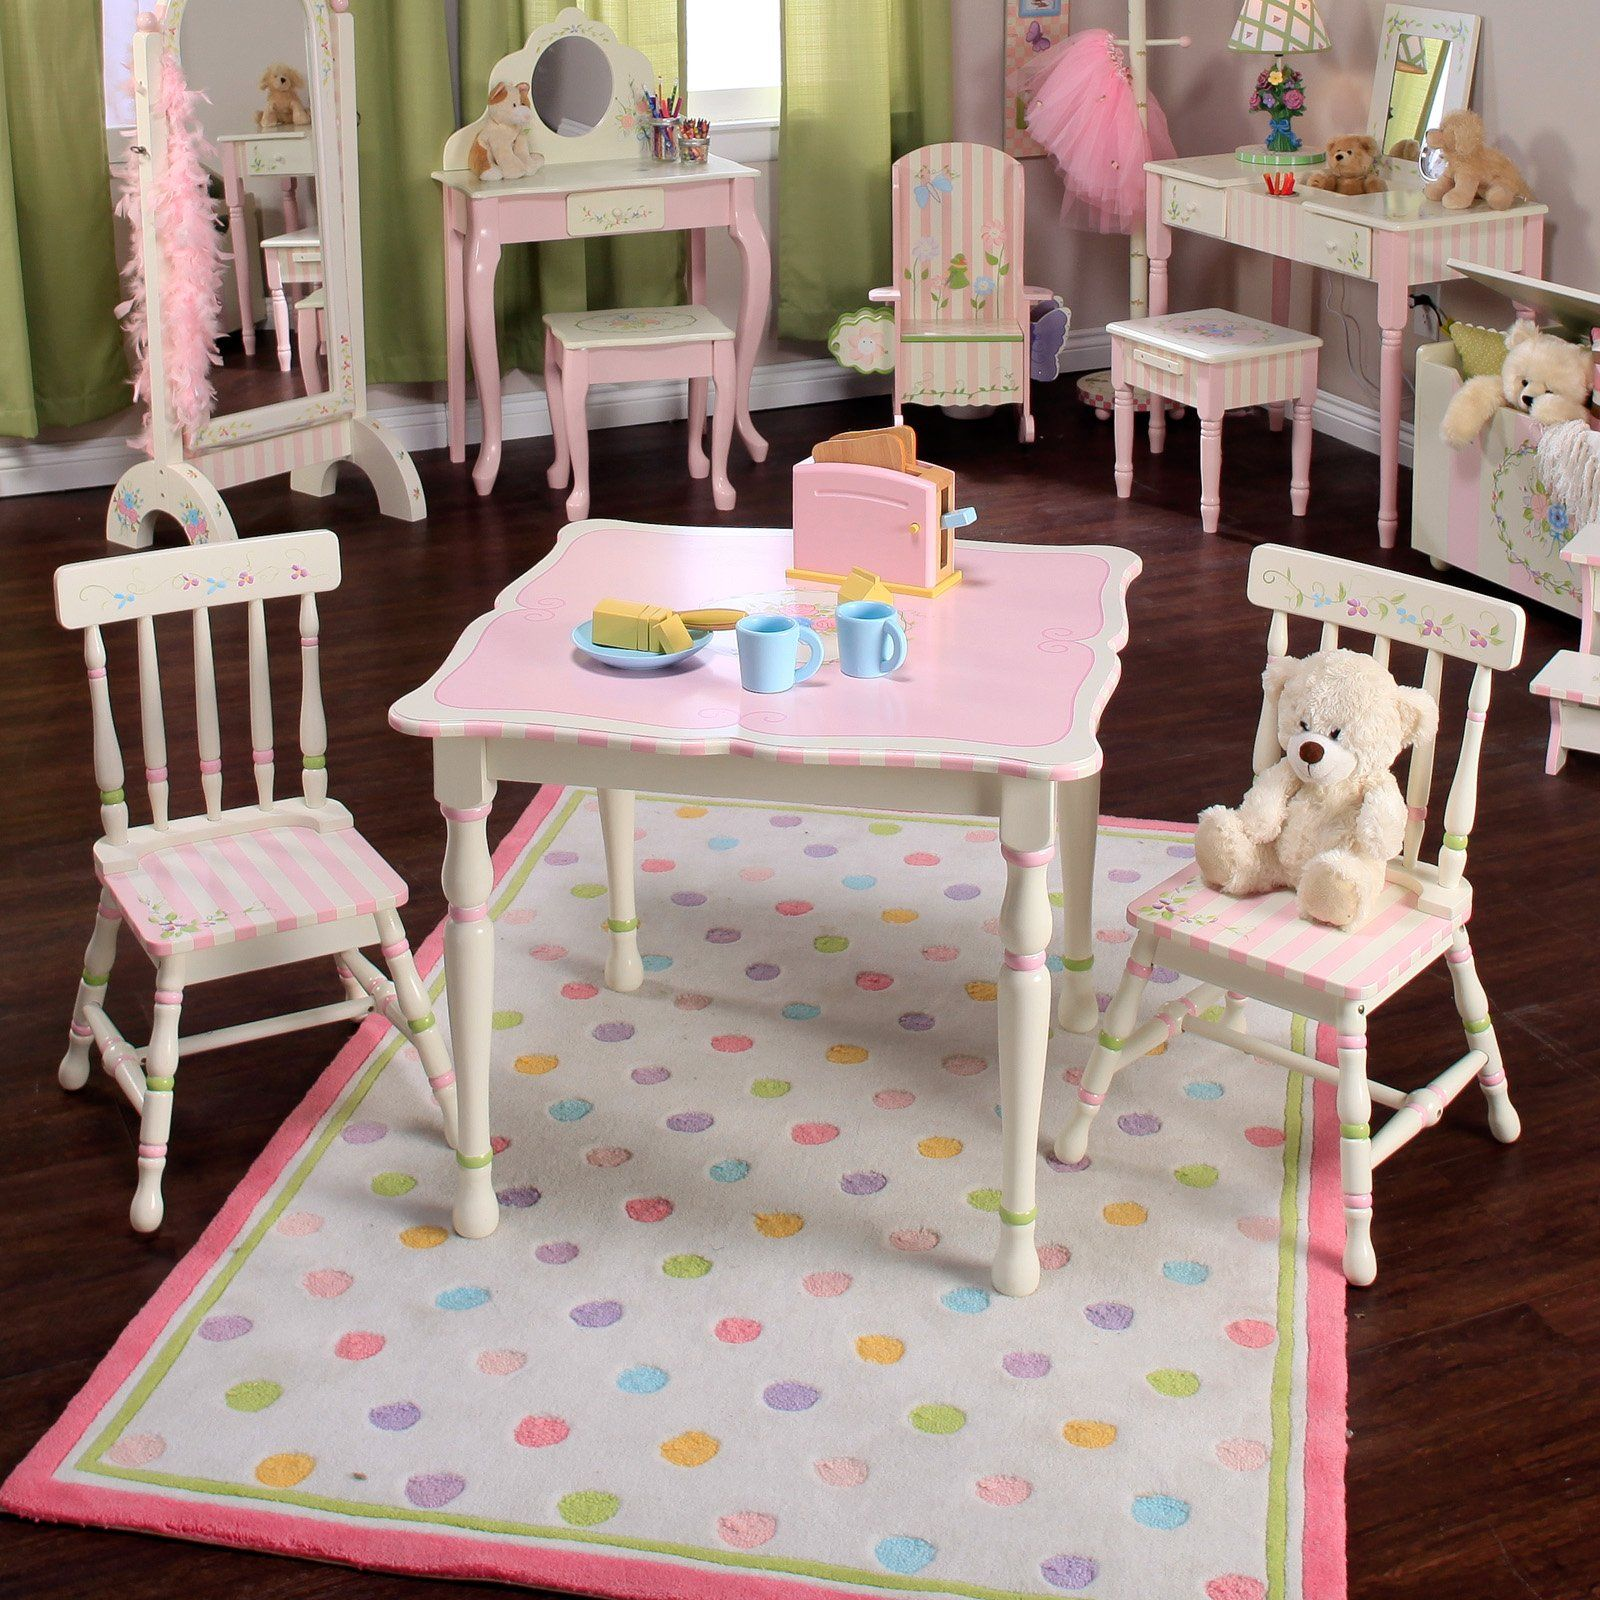 Have to have it Teamson Kids Bouquet Table and Chair Set $249 99